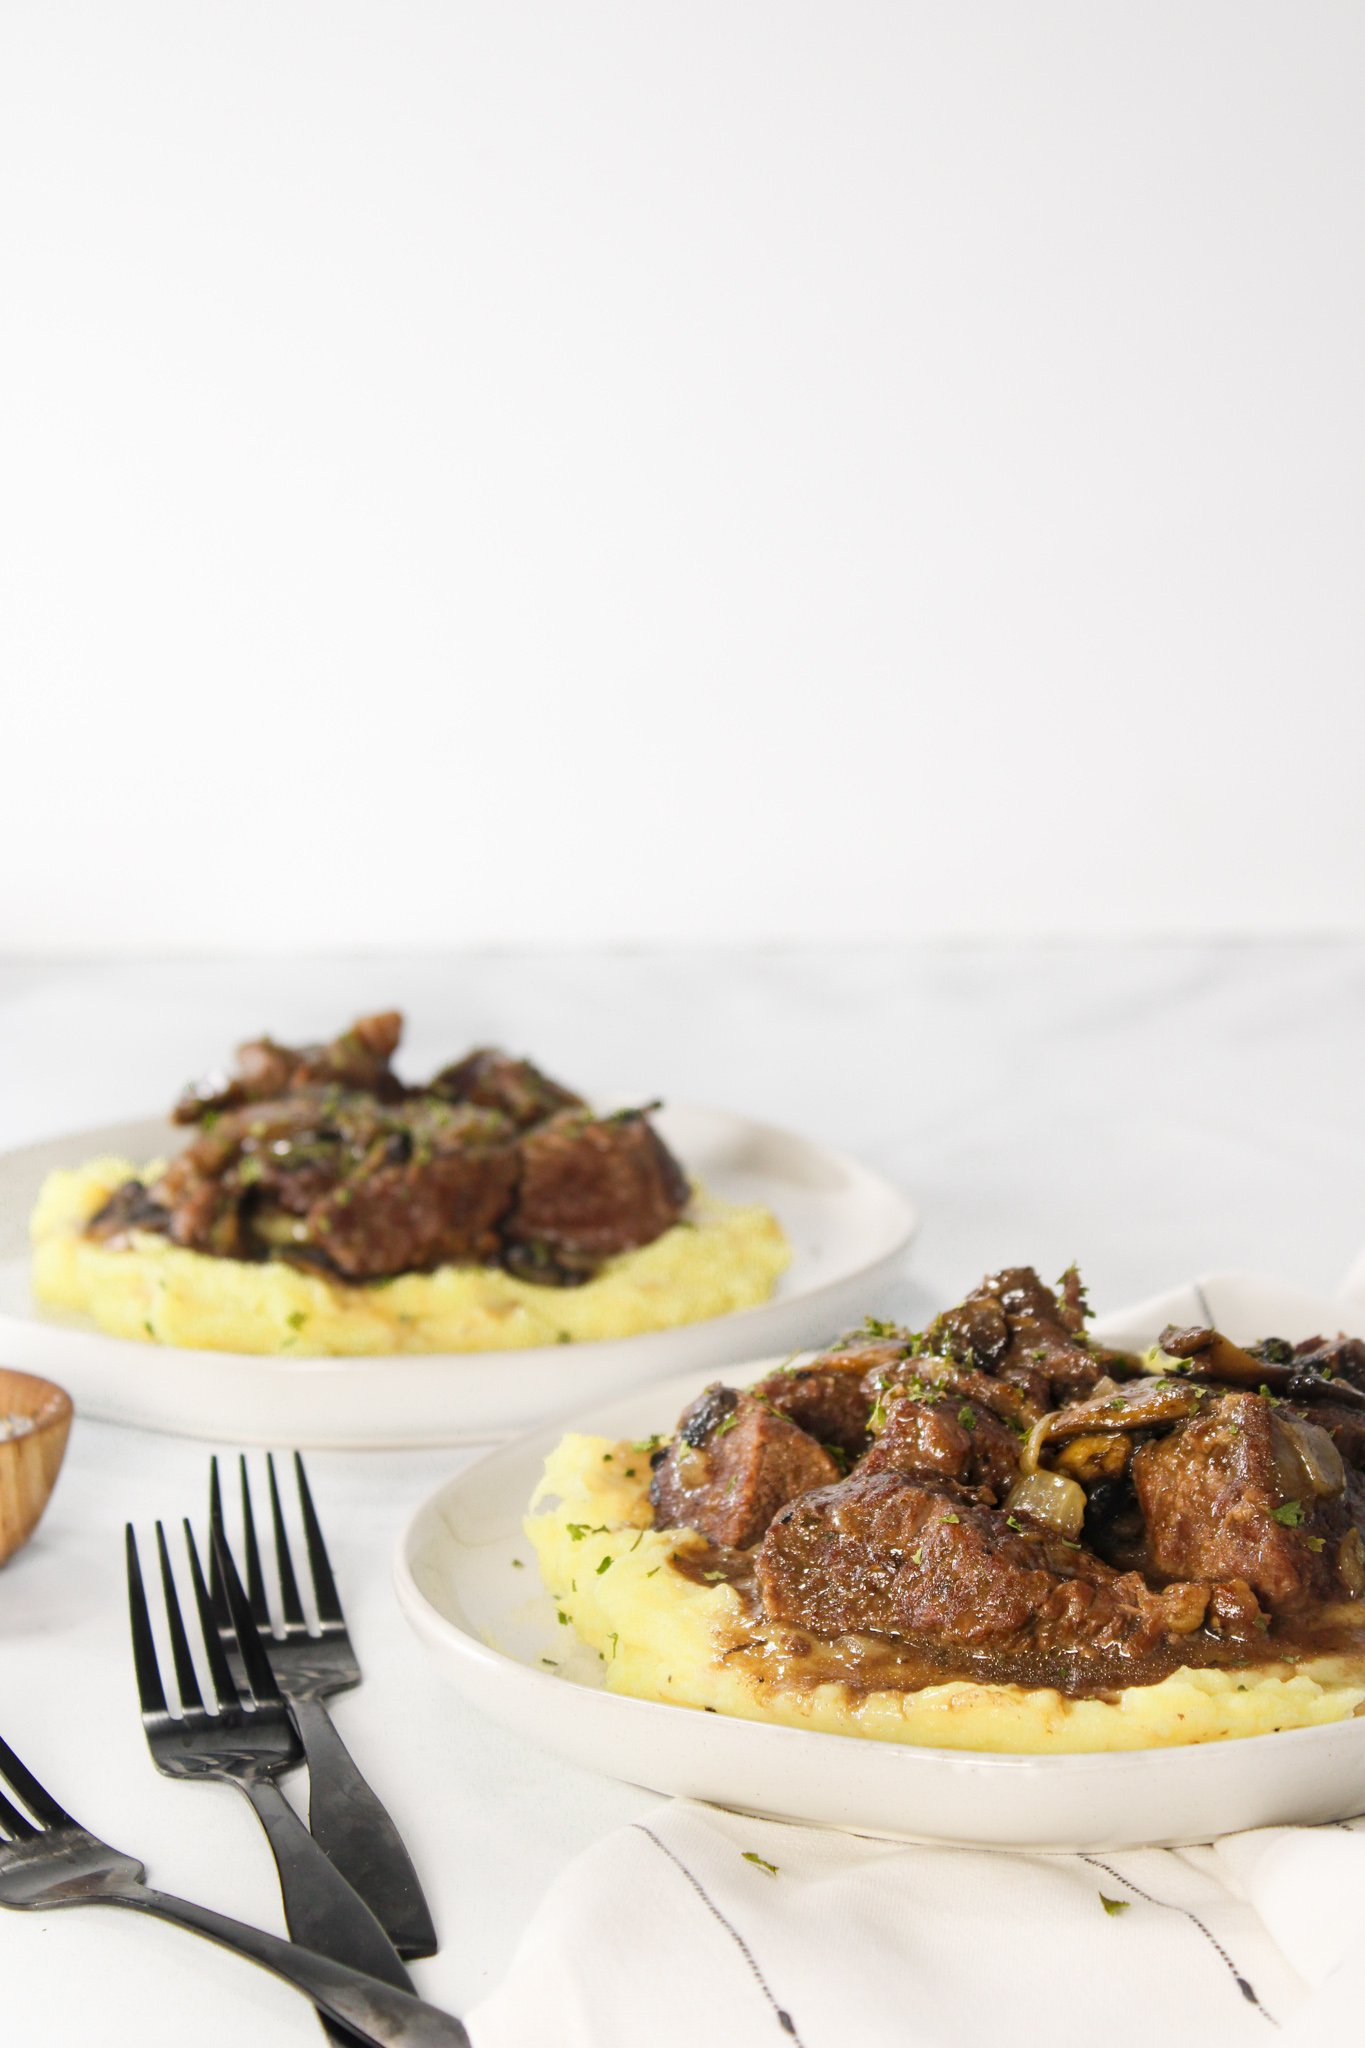 Beef Tips and Gravy sitting on a cream plate in a bed of mashed potatoes topped with mushrooms, onions and gravy with some fresh parsley on top. There are two plates and the closer on is sitting on a white and black stripped napkin with black forks ready to be picked up to dig in.